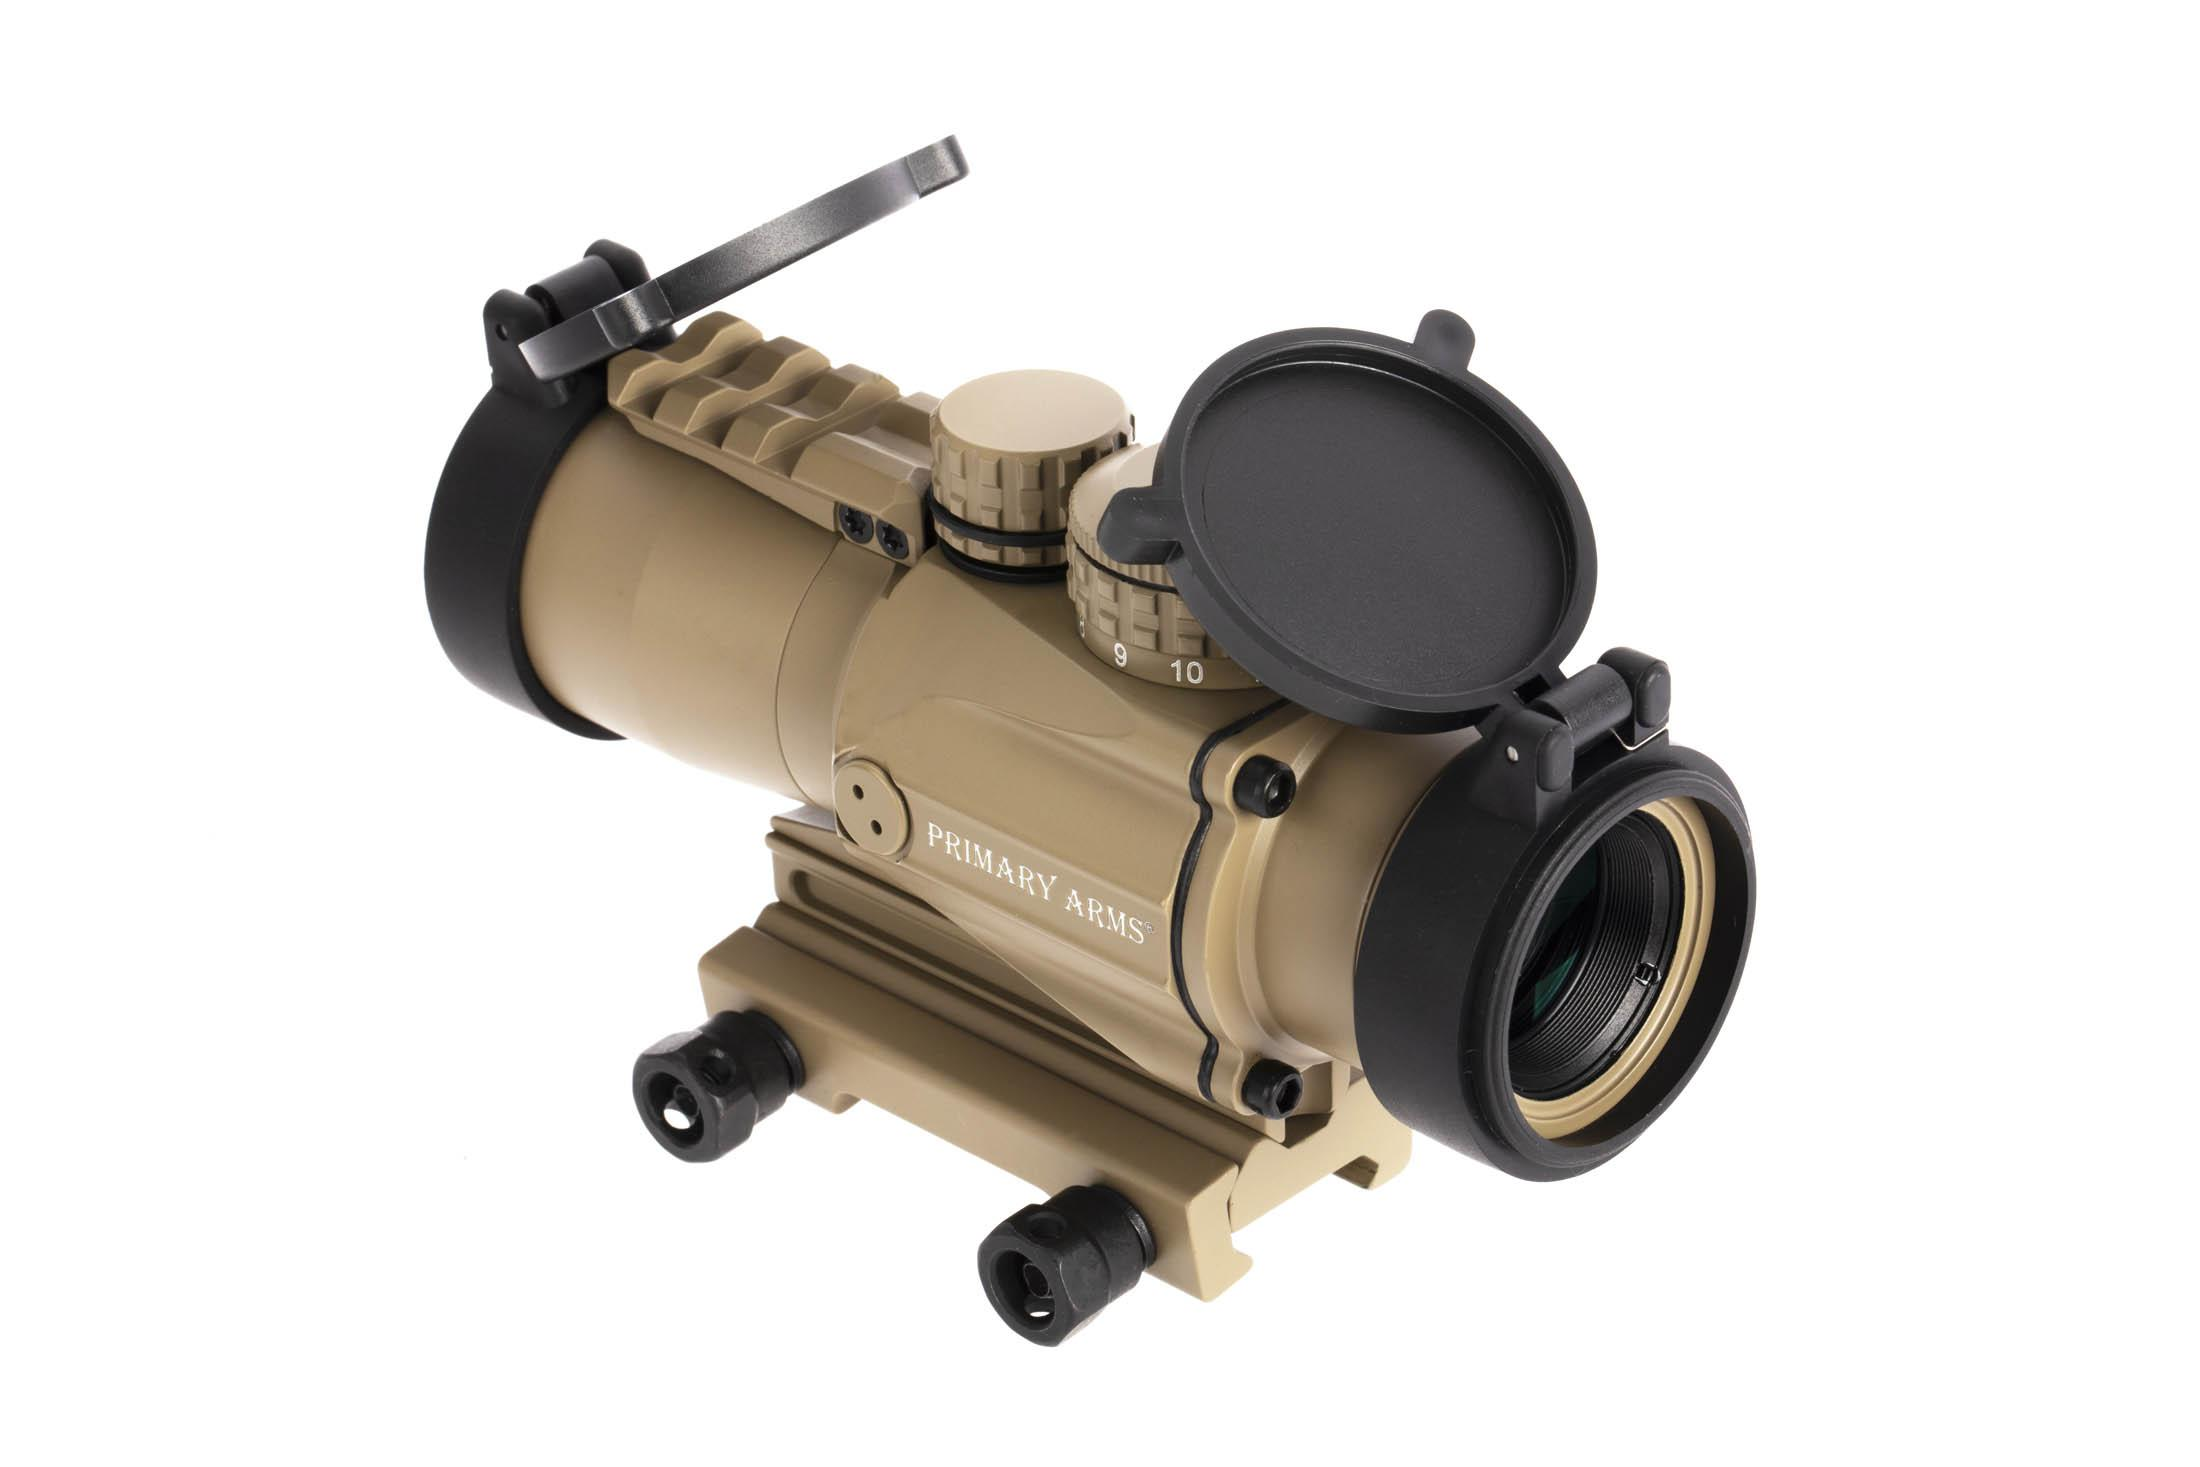 Primary Arms Gen 2 3x FDE prism scope with 5.56 ACSS CQB-M2 reticle ships with flip up lens covers and a thumbscrew mount